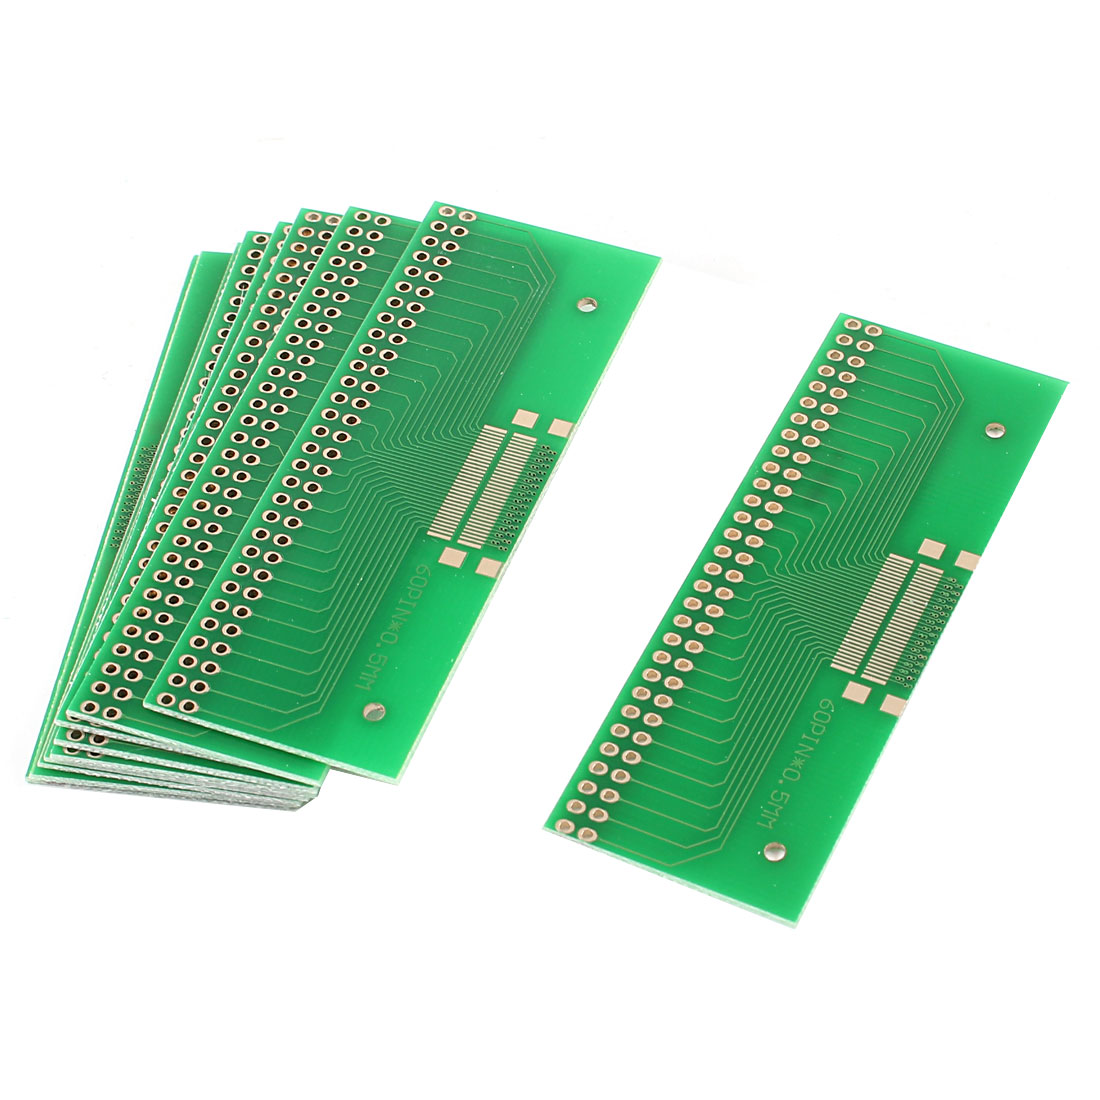 10 Pcs Universal Dual Row 60Pin 0.5mm Pitch TFT LCD Adapter PCB Board 28.5mmx76mm